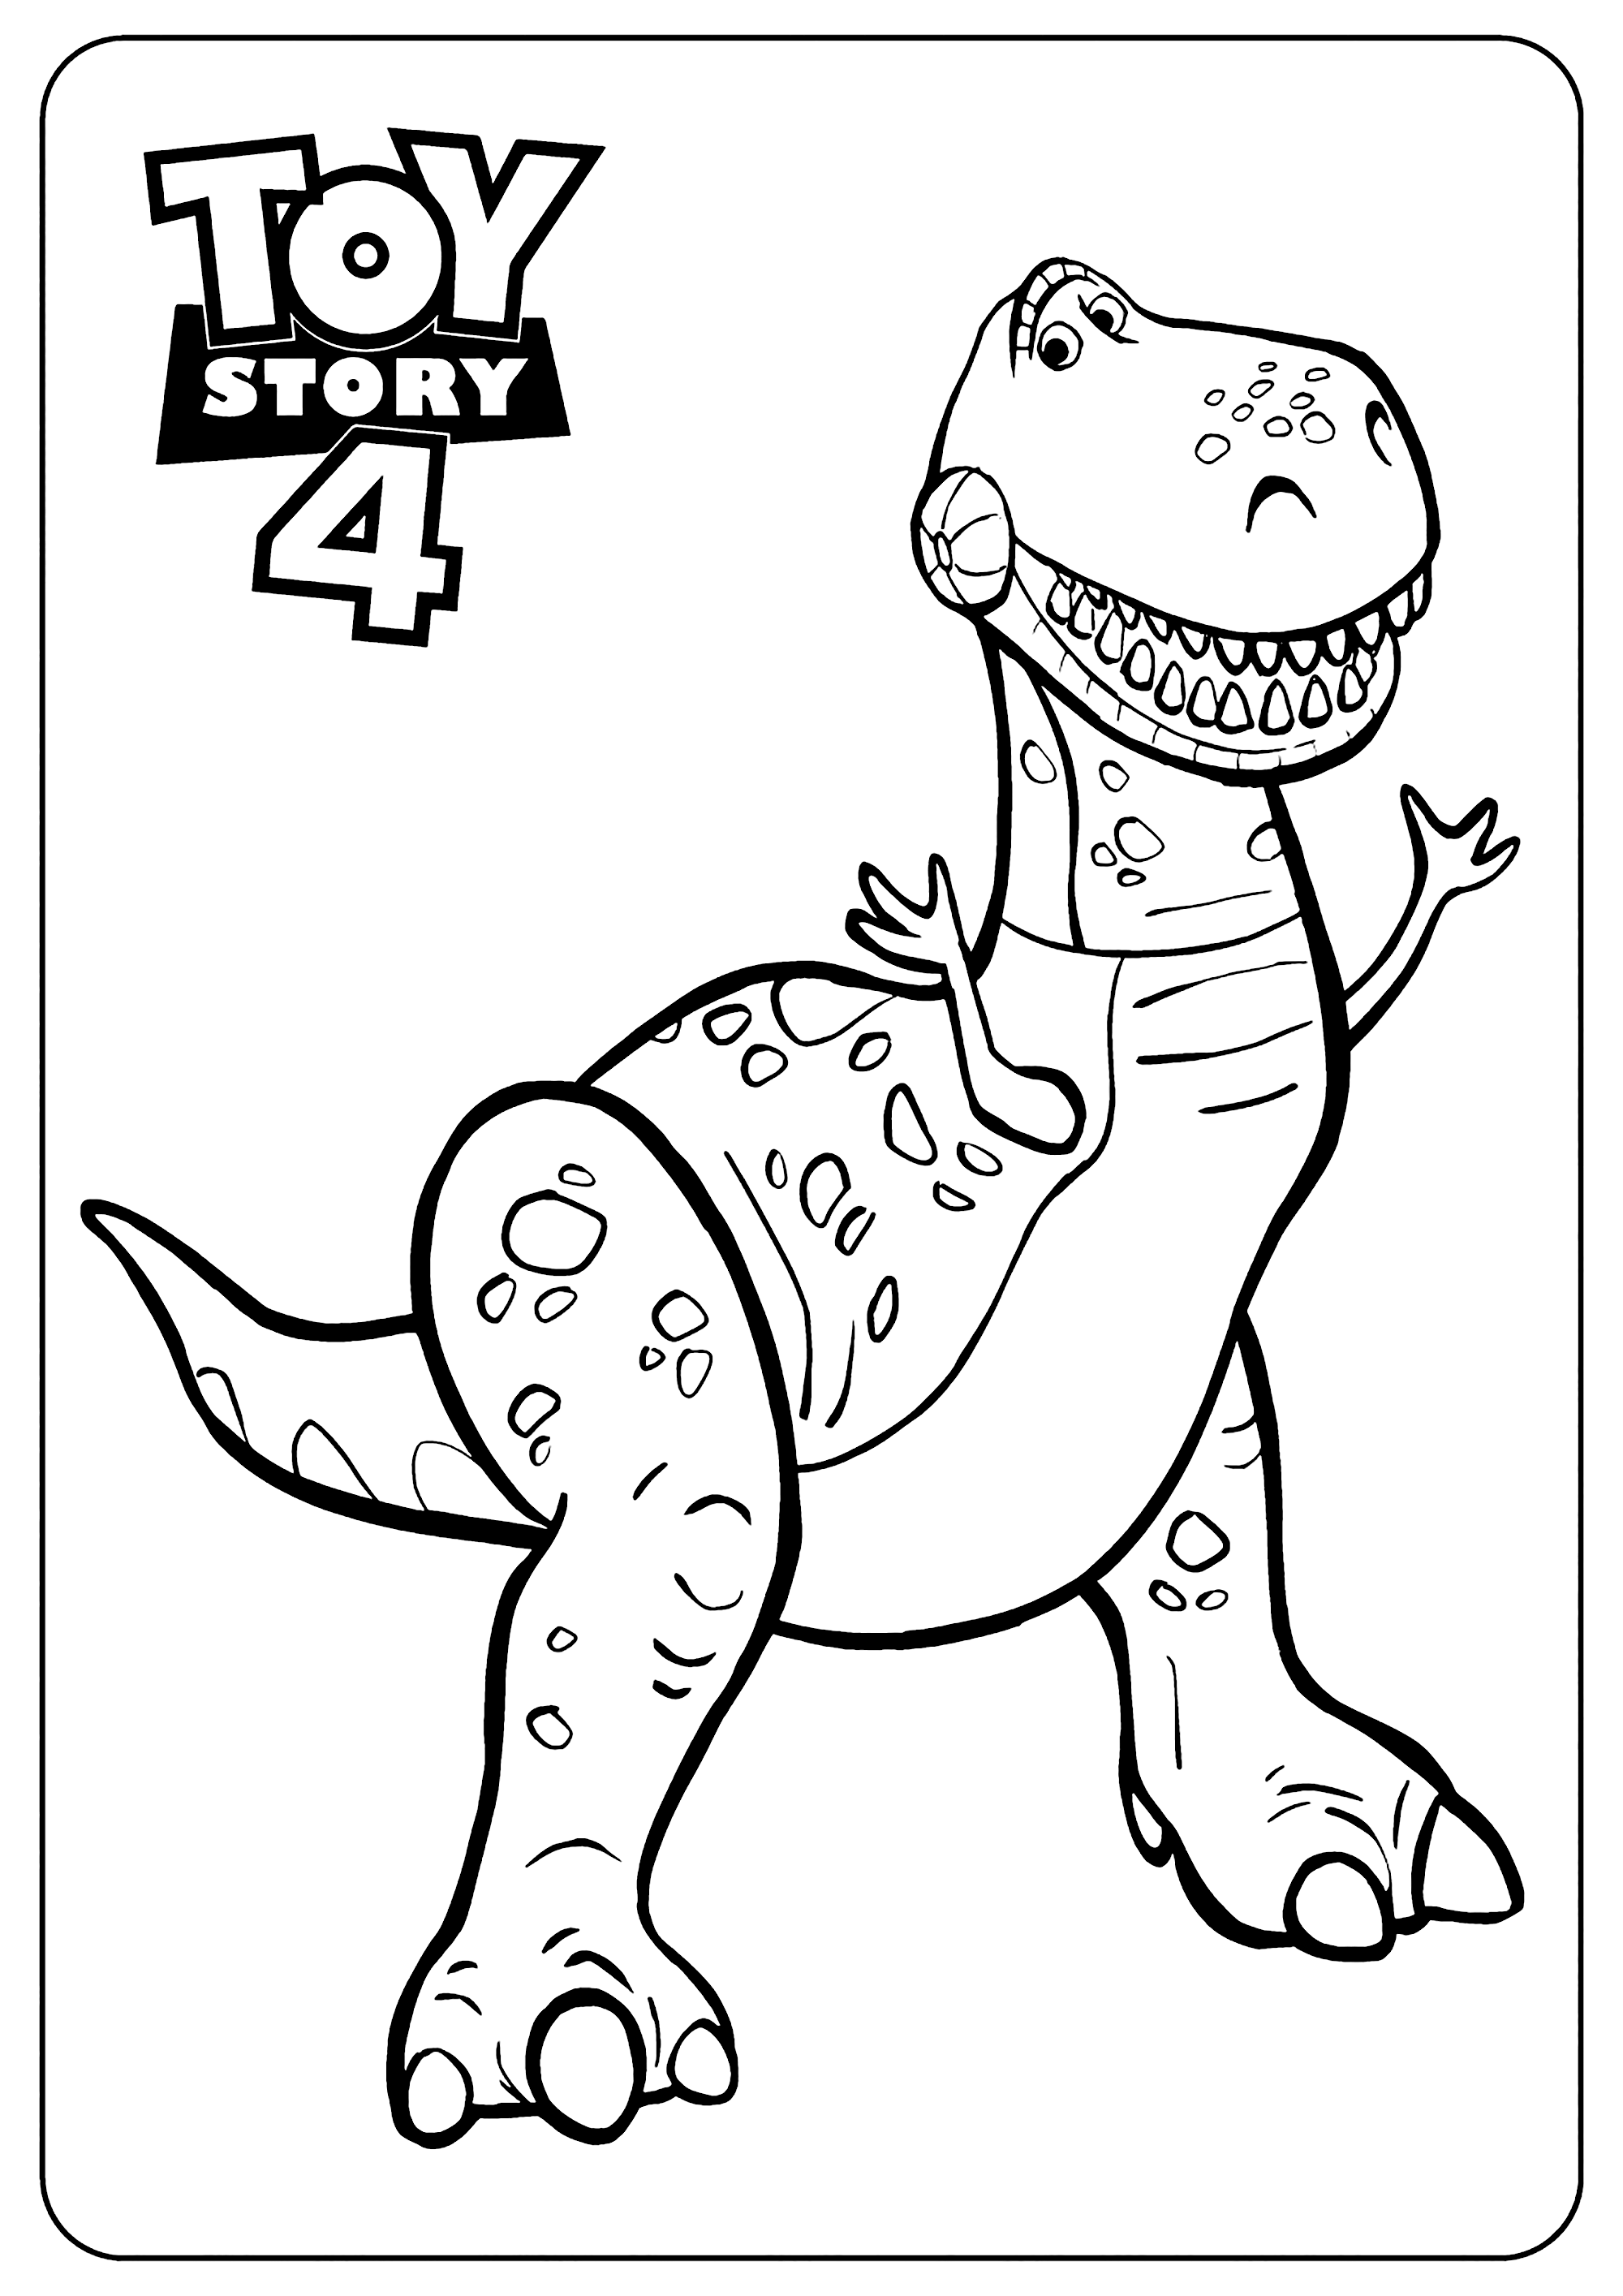 toy story 4 coloring pictures toy story 4 coloring pages to you toy story 4 coloring story pictures toy 4 coloring